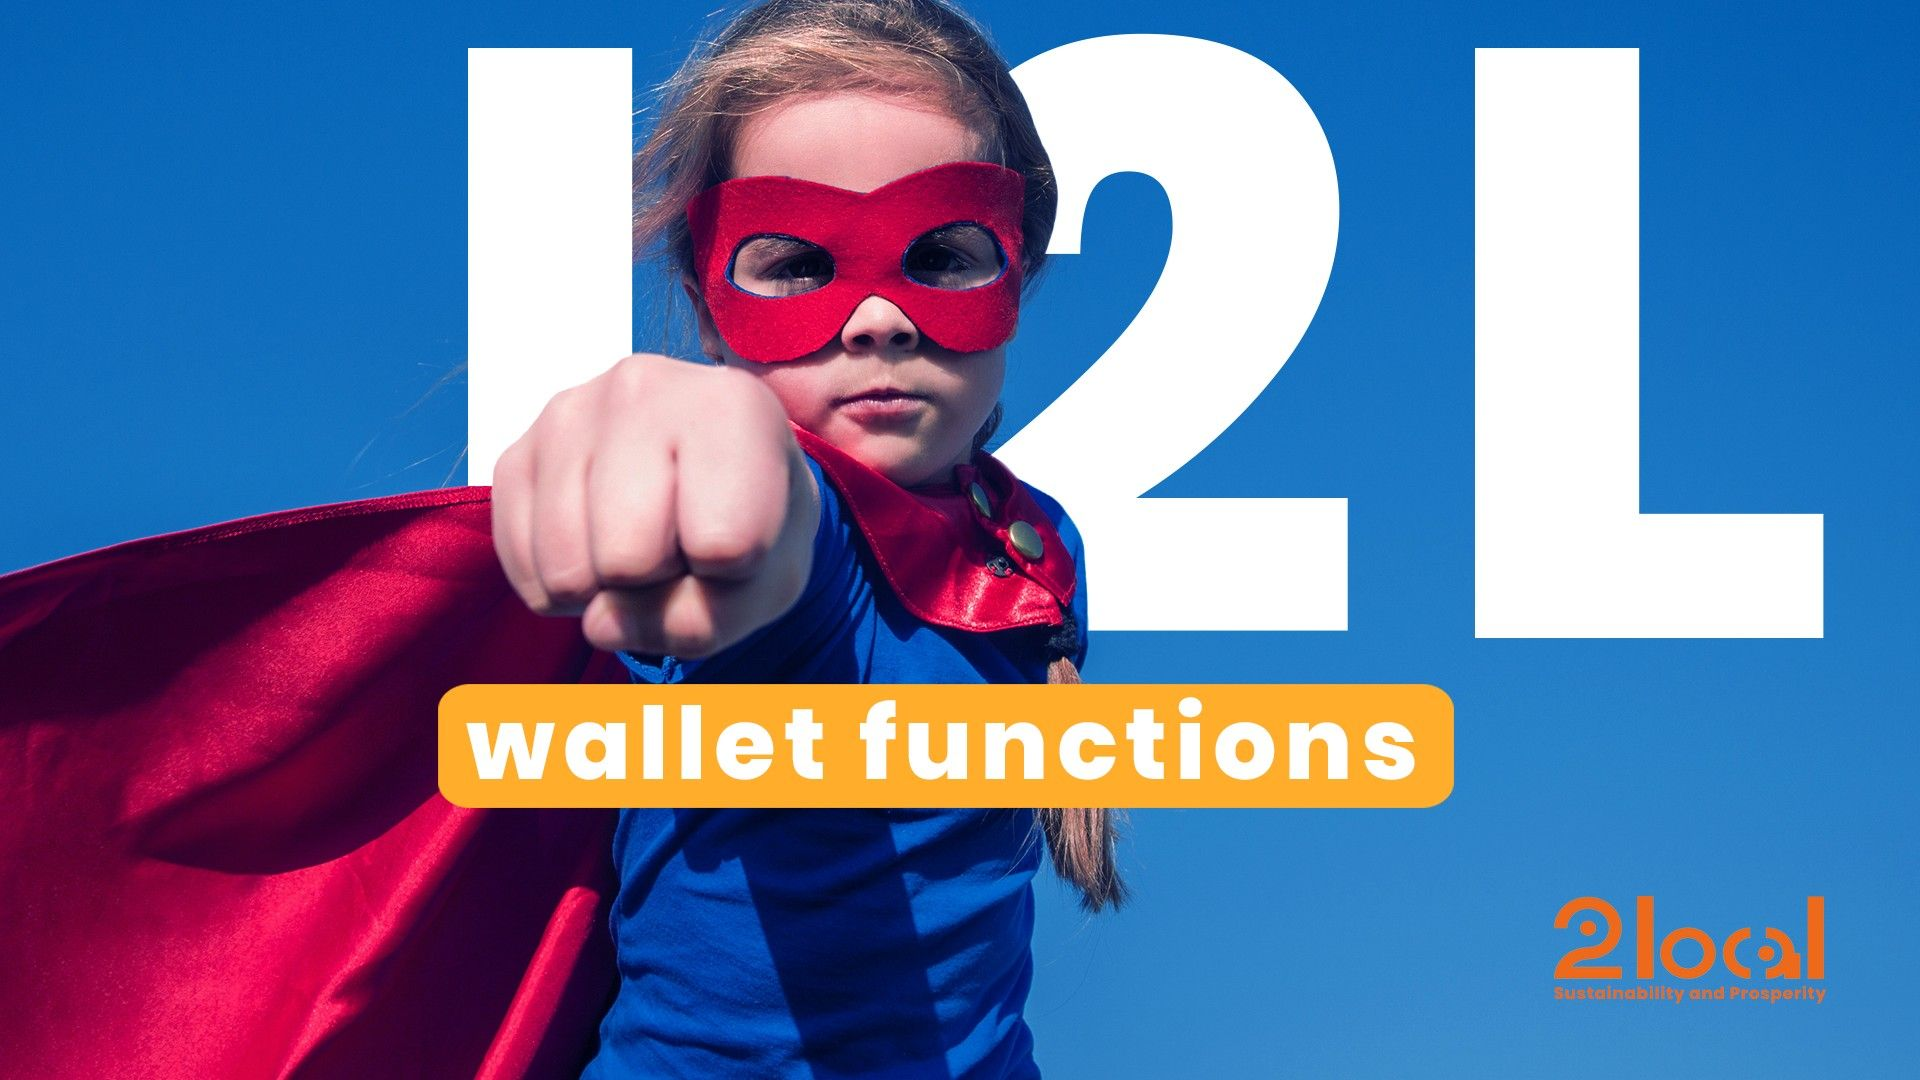 The L2L wallet is available in the #2local Android and iOS app, as well as on the website with the only difference in Website Marketplace function availability. The app also has an L2L request function with a QR code. The QR code allows users to easily scan the code and transfer the desired amount of #L2L coins to another account. ⠀⠀ #digitalwallet #crypto #blockchain #IEO